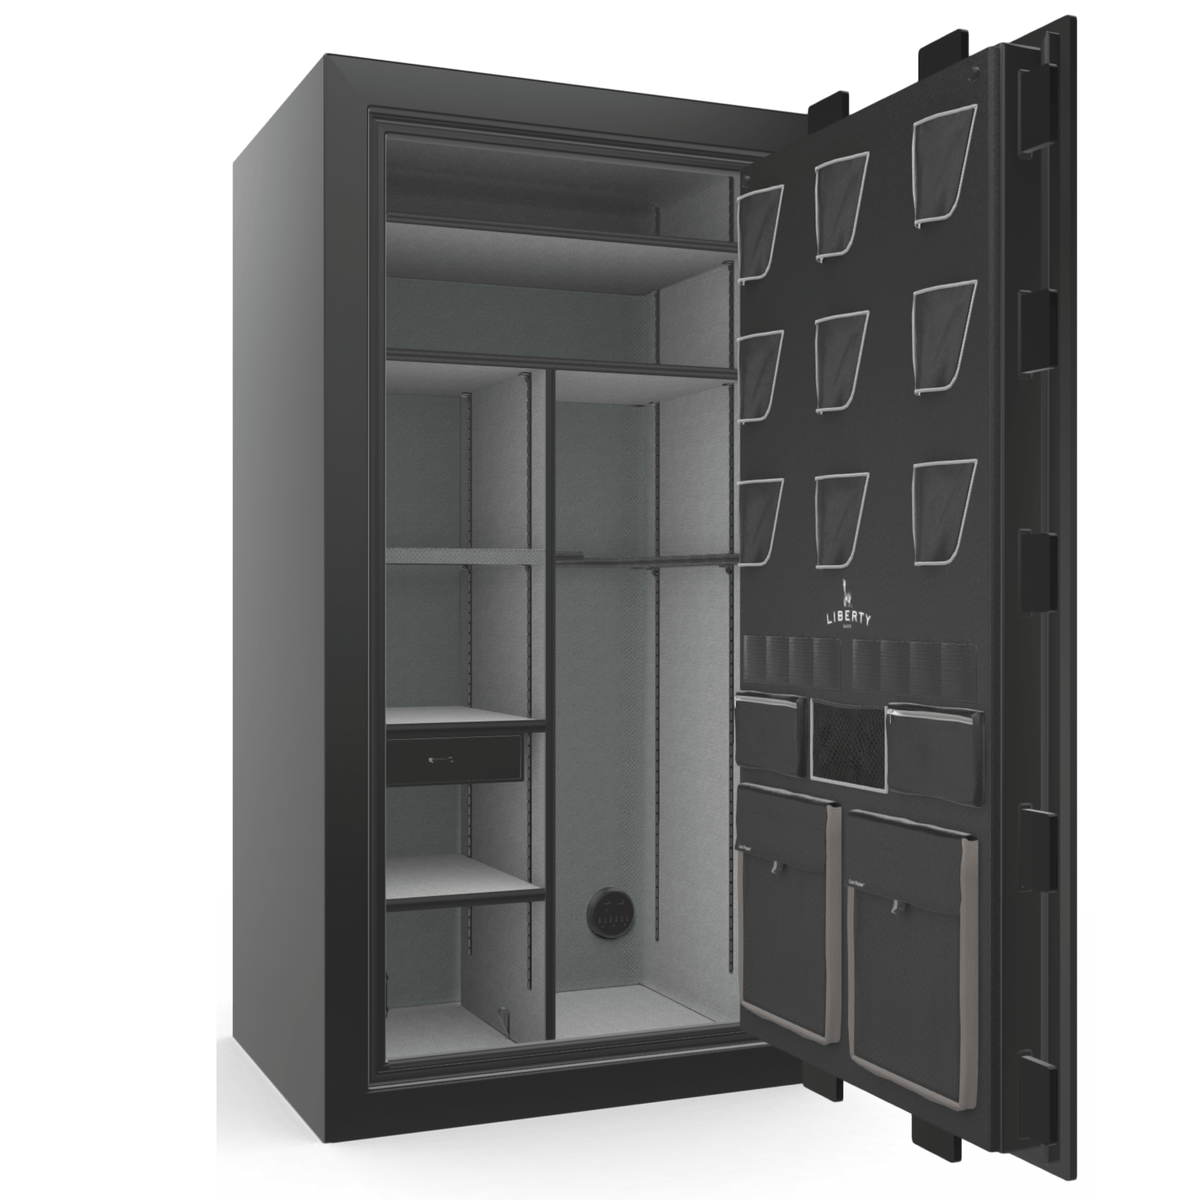 "Classic Plus | 40 | Level 7 Security | 110 Minute Fire Protection | Black Gloss | Chrome Mechanical Lock | 65.5""(H) x 36""(W) x 32""(D)"